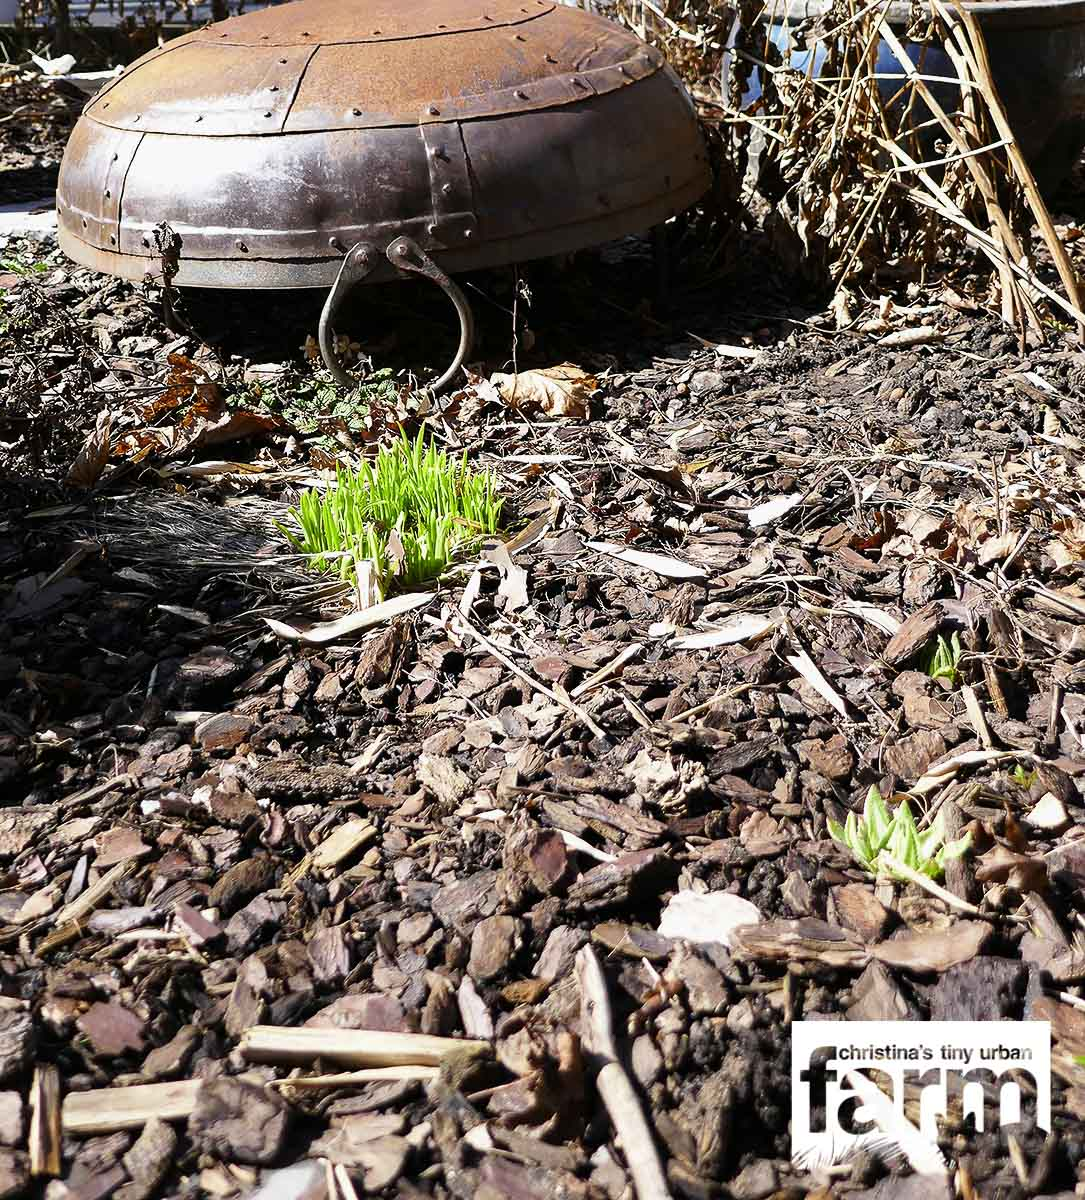 Garden patch covered in brown mulch, with tender platelets sprouting in front of a rustic fire pit that is turned upside down.